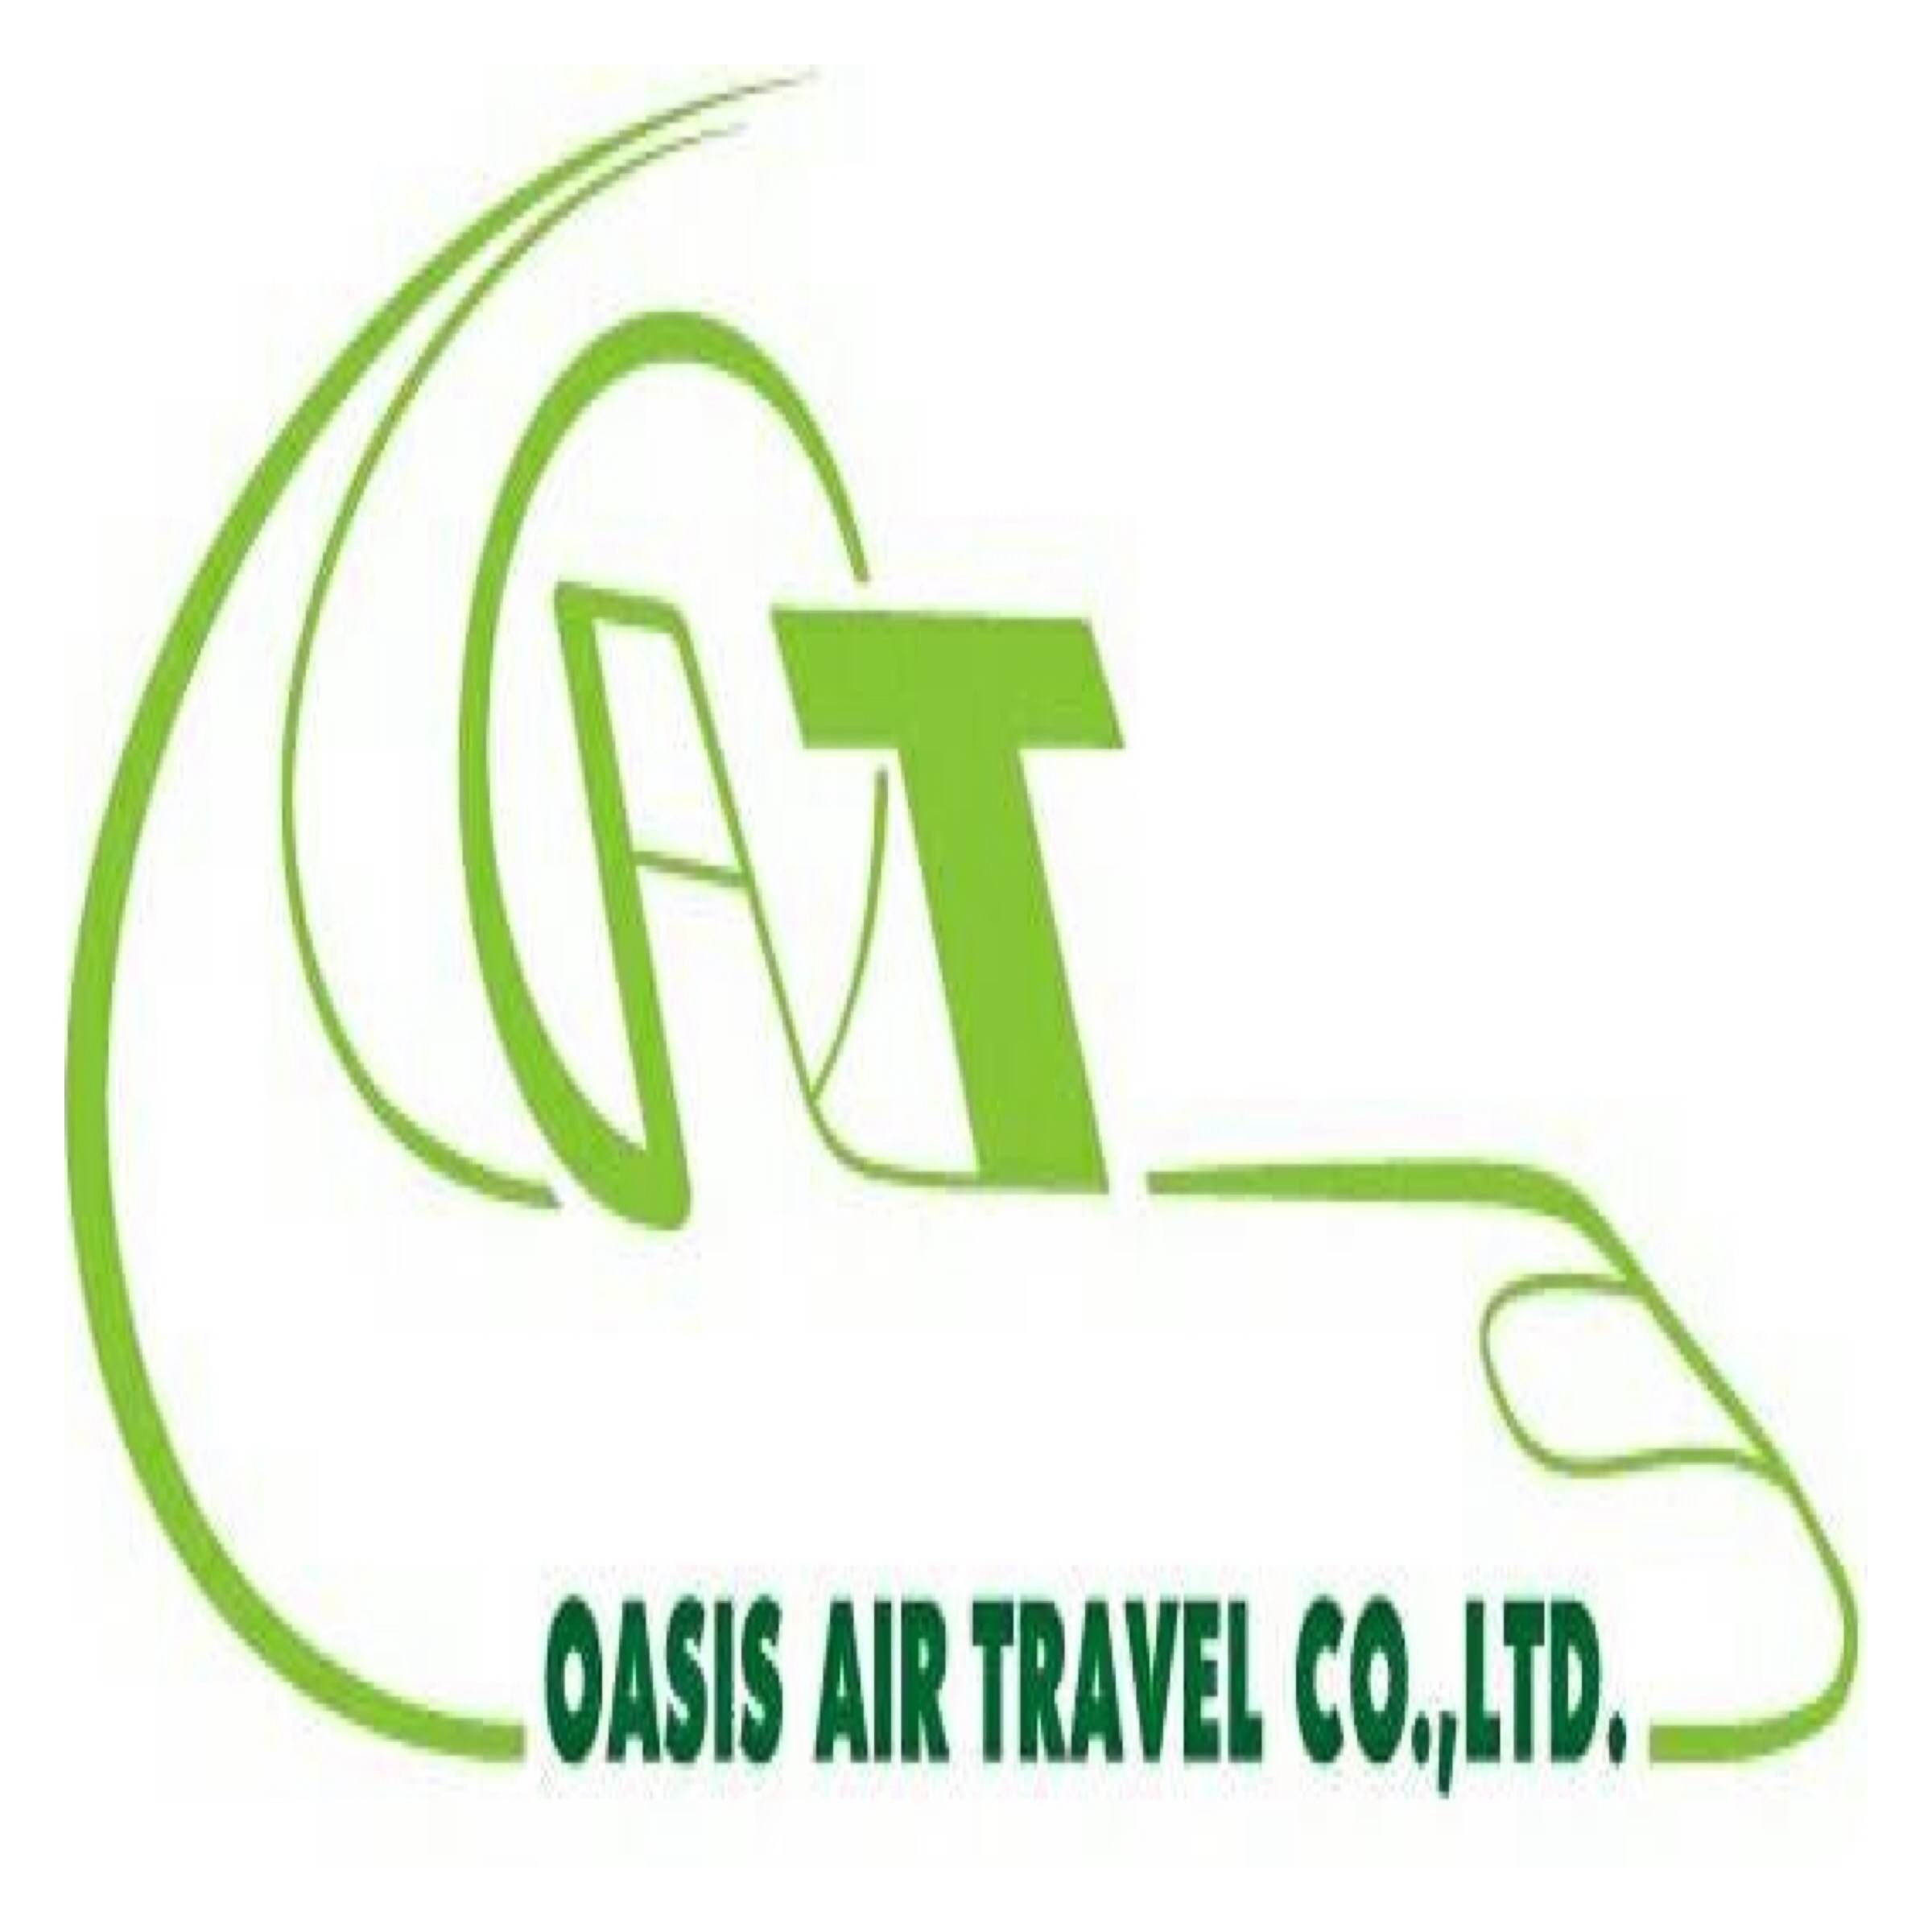 Oasis Air Travel